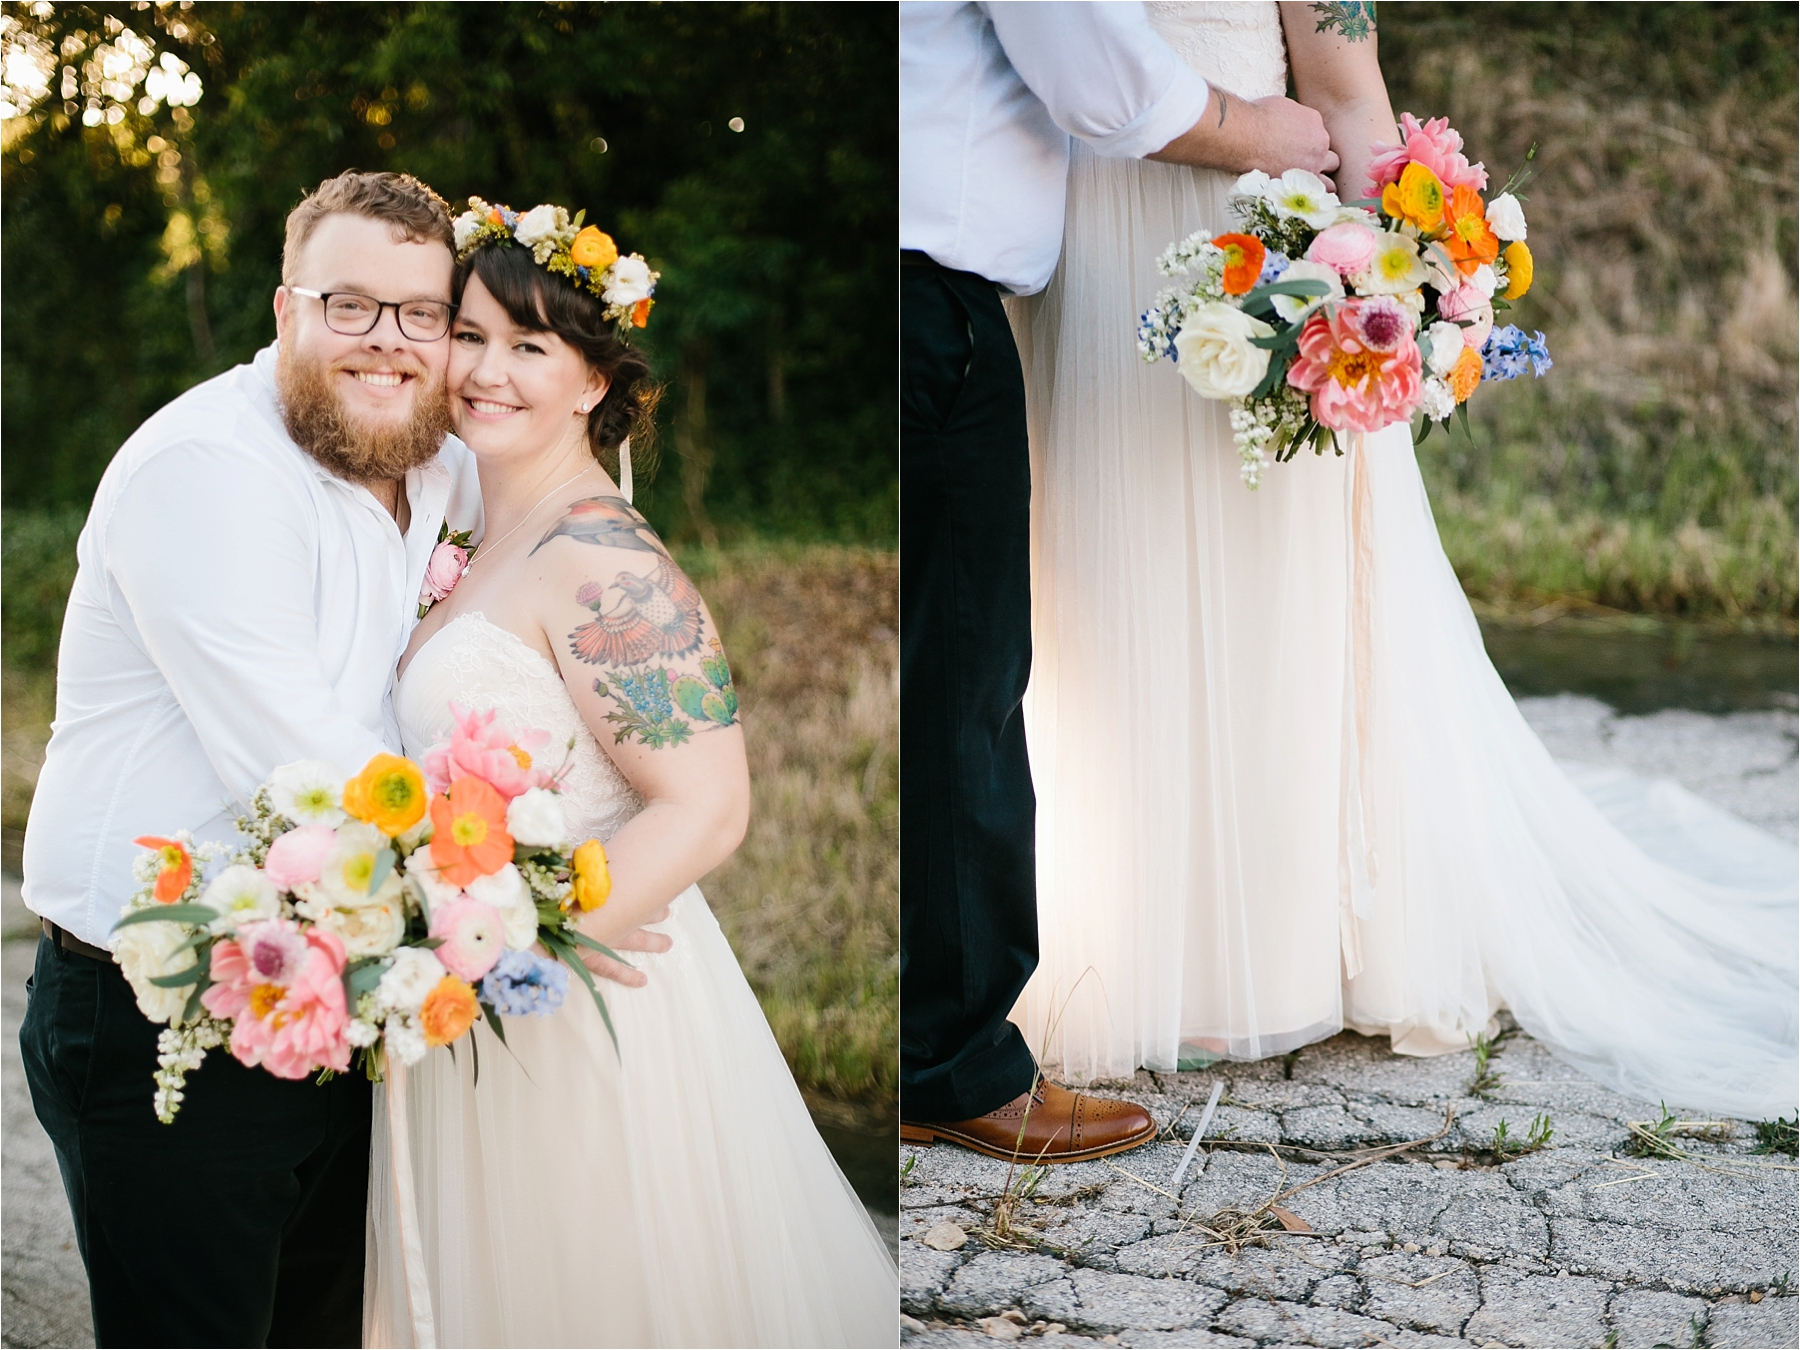 TX Cat Wade A Bright Colorful Wedding At Artspace 111 In Fort Worth